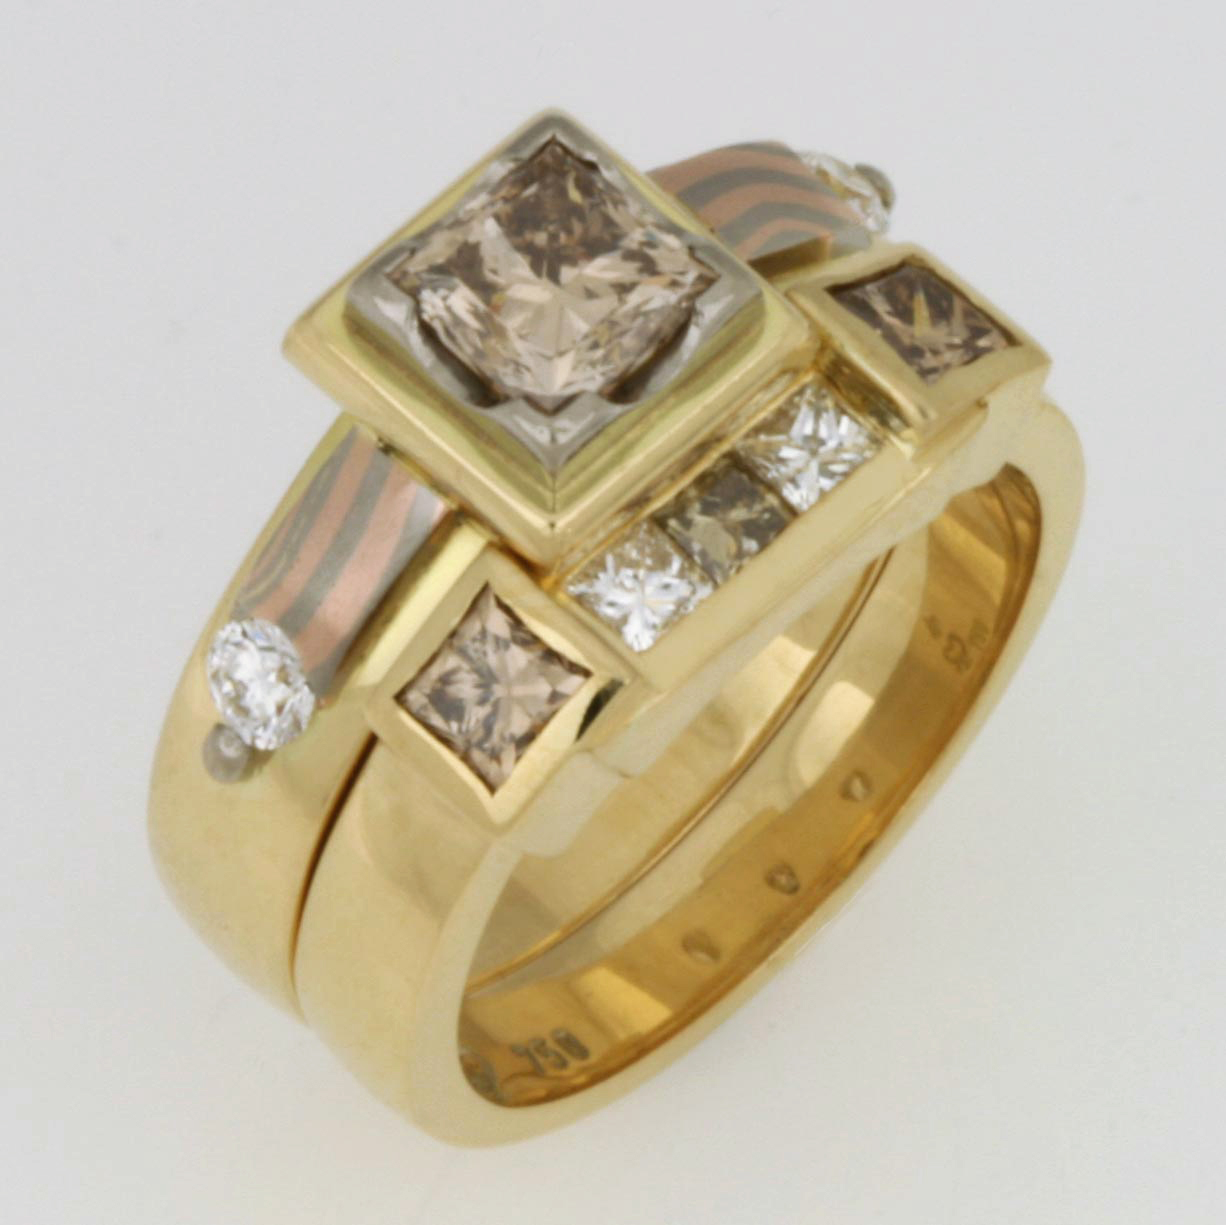 Handmade ladies 18ct yellow gold diamond ring set featuring Mokume Gane and champagne diamonds